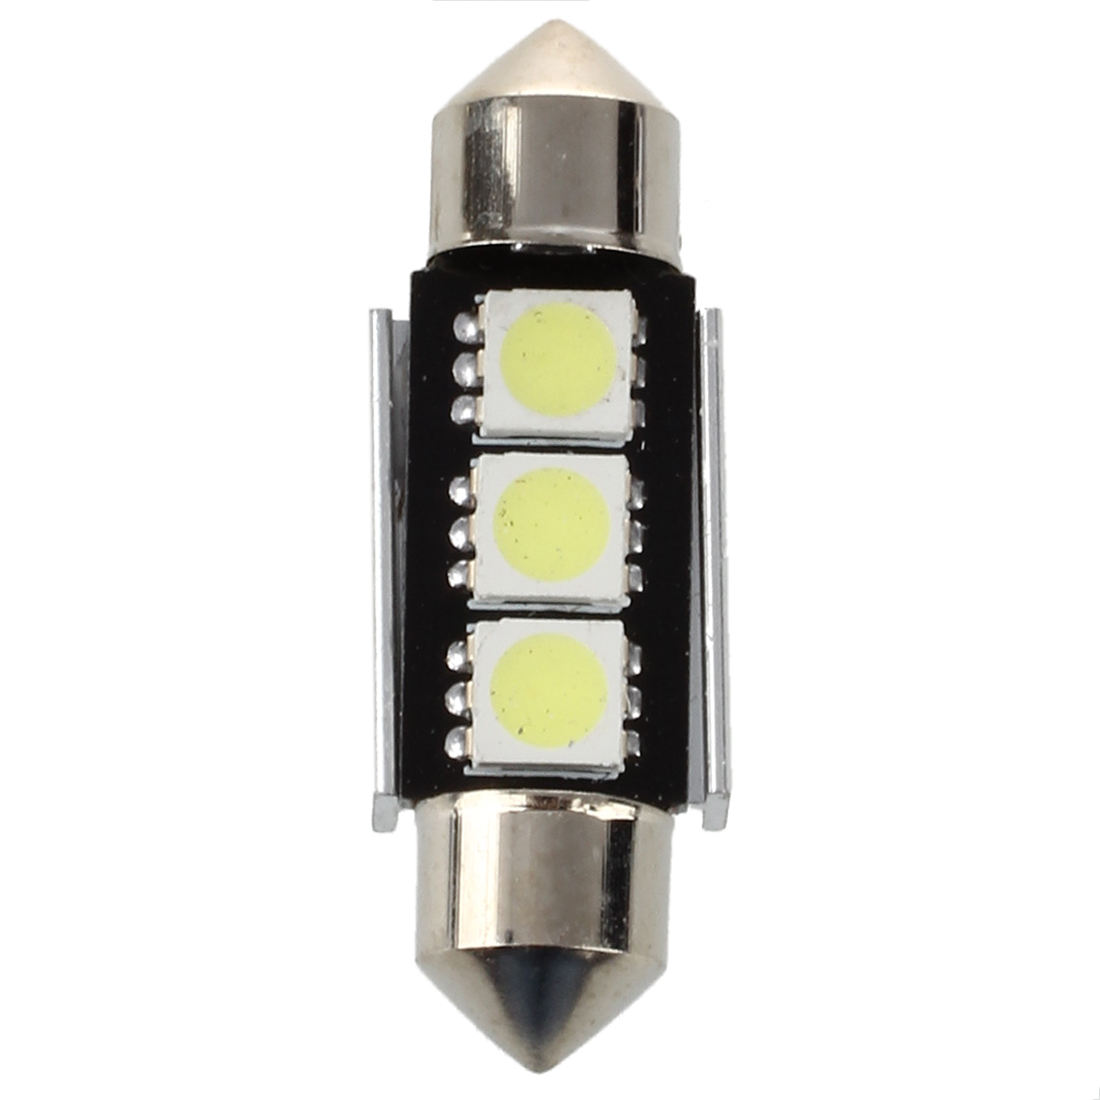 2X 36mm CANBUS Error Free 3 5050SMD LEDs 6418 License Plate Dome Bright Light